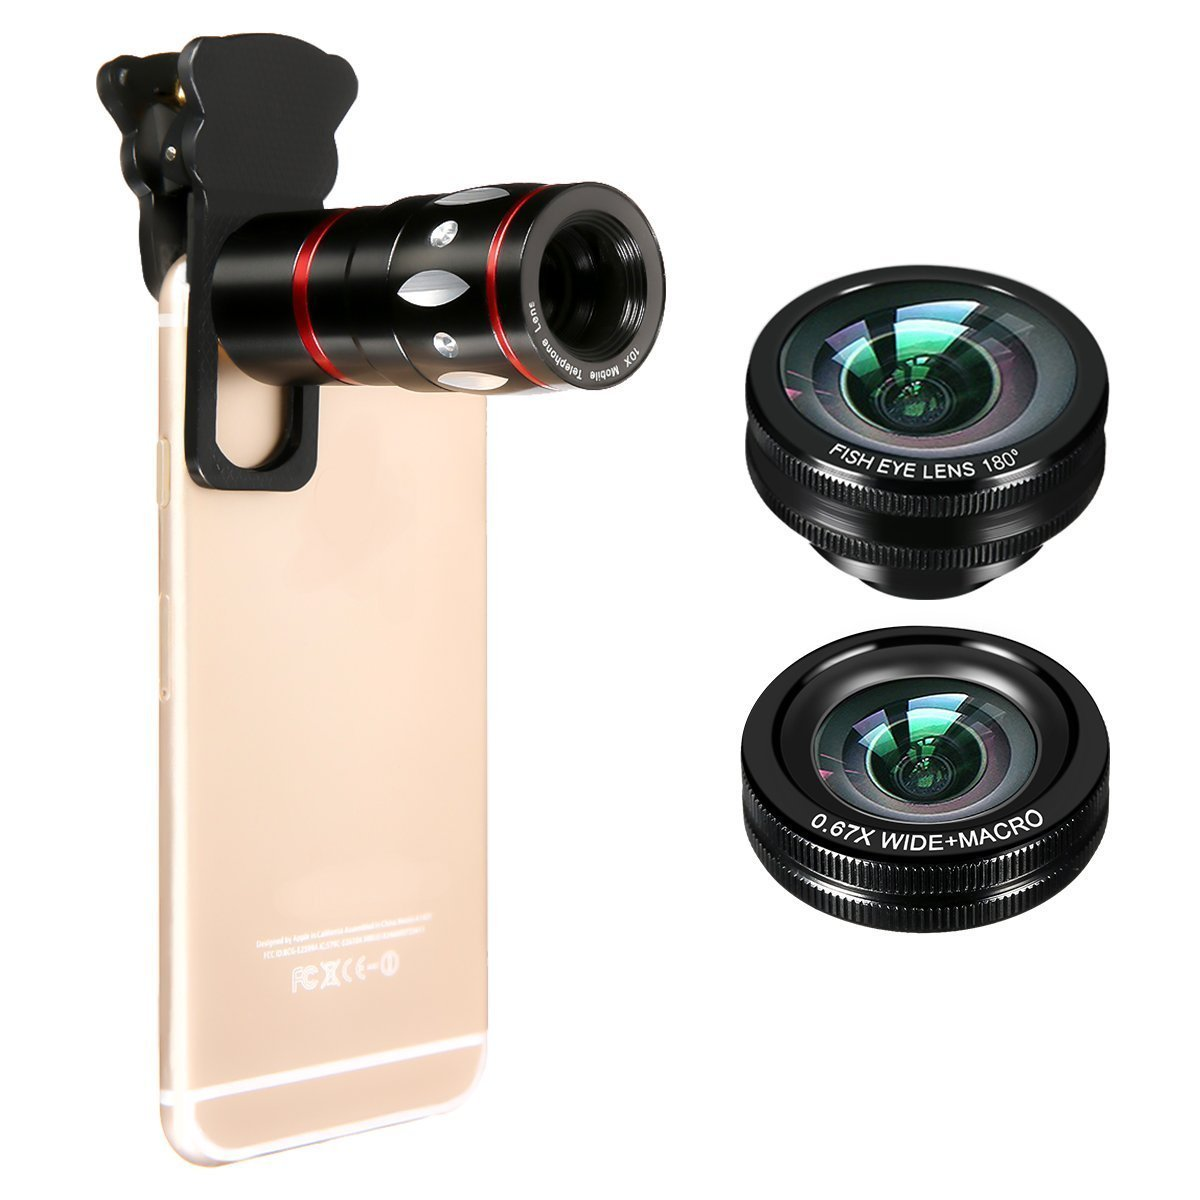 camera lens 4 in 1 10x Zoom Telephoto + Fish Eye + Wide Angle + Macro Clip on Cellphone Lens Kits For iPhone 6S 6, Samsung, HTC, Ipad, Tablet, PC, Laptops